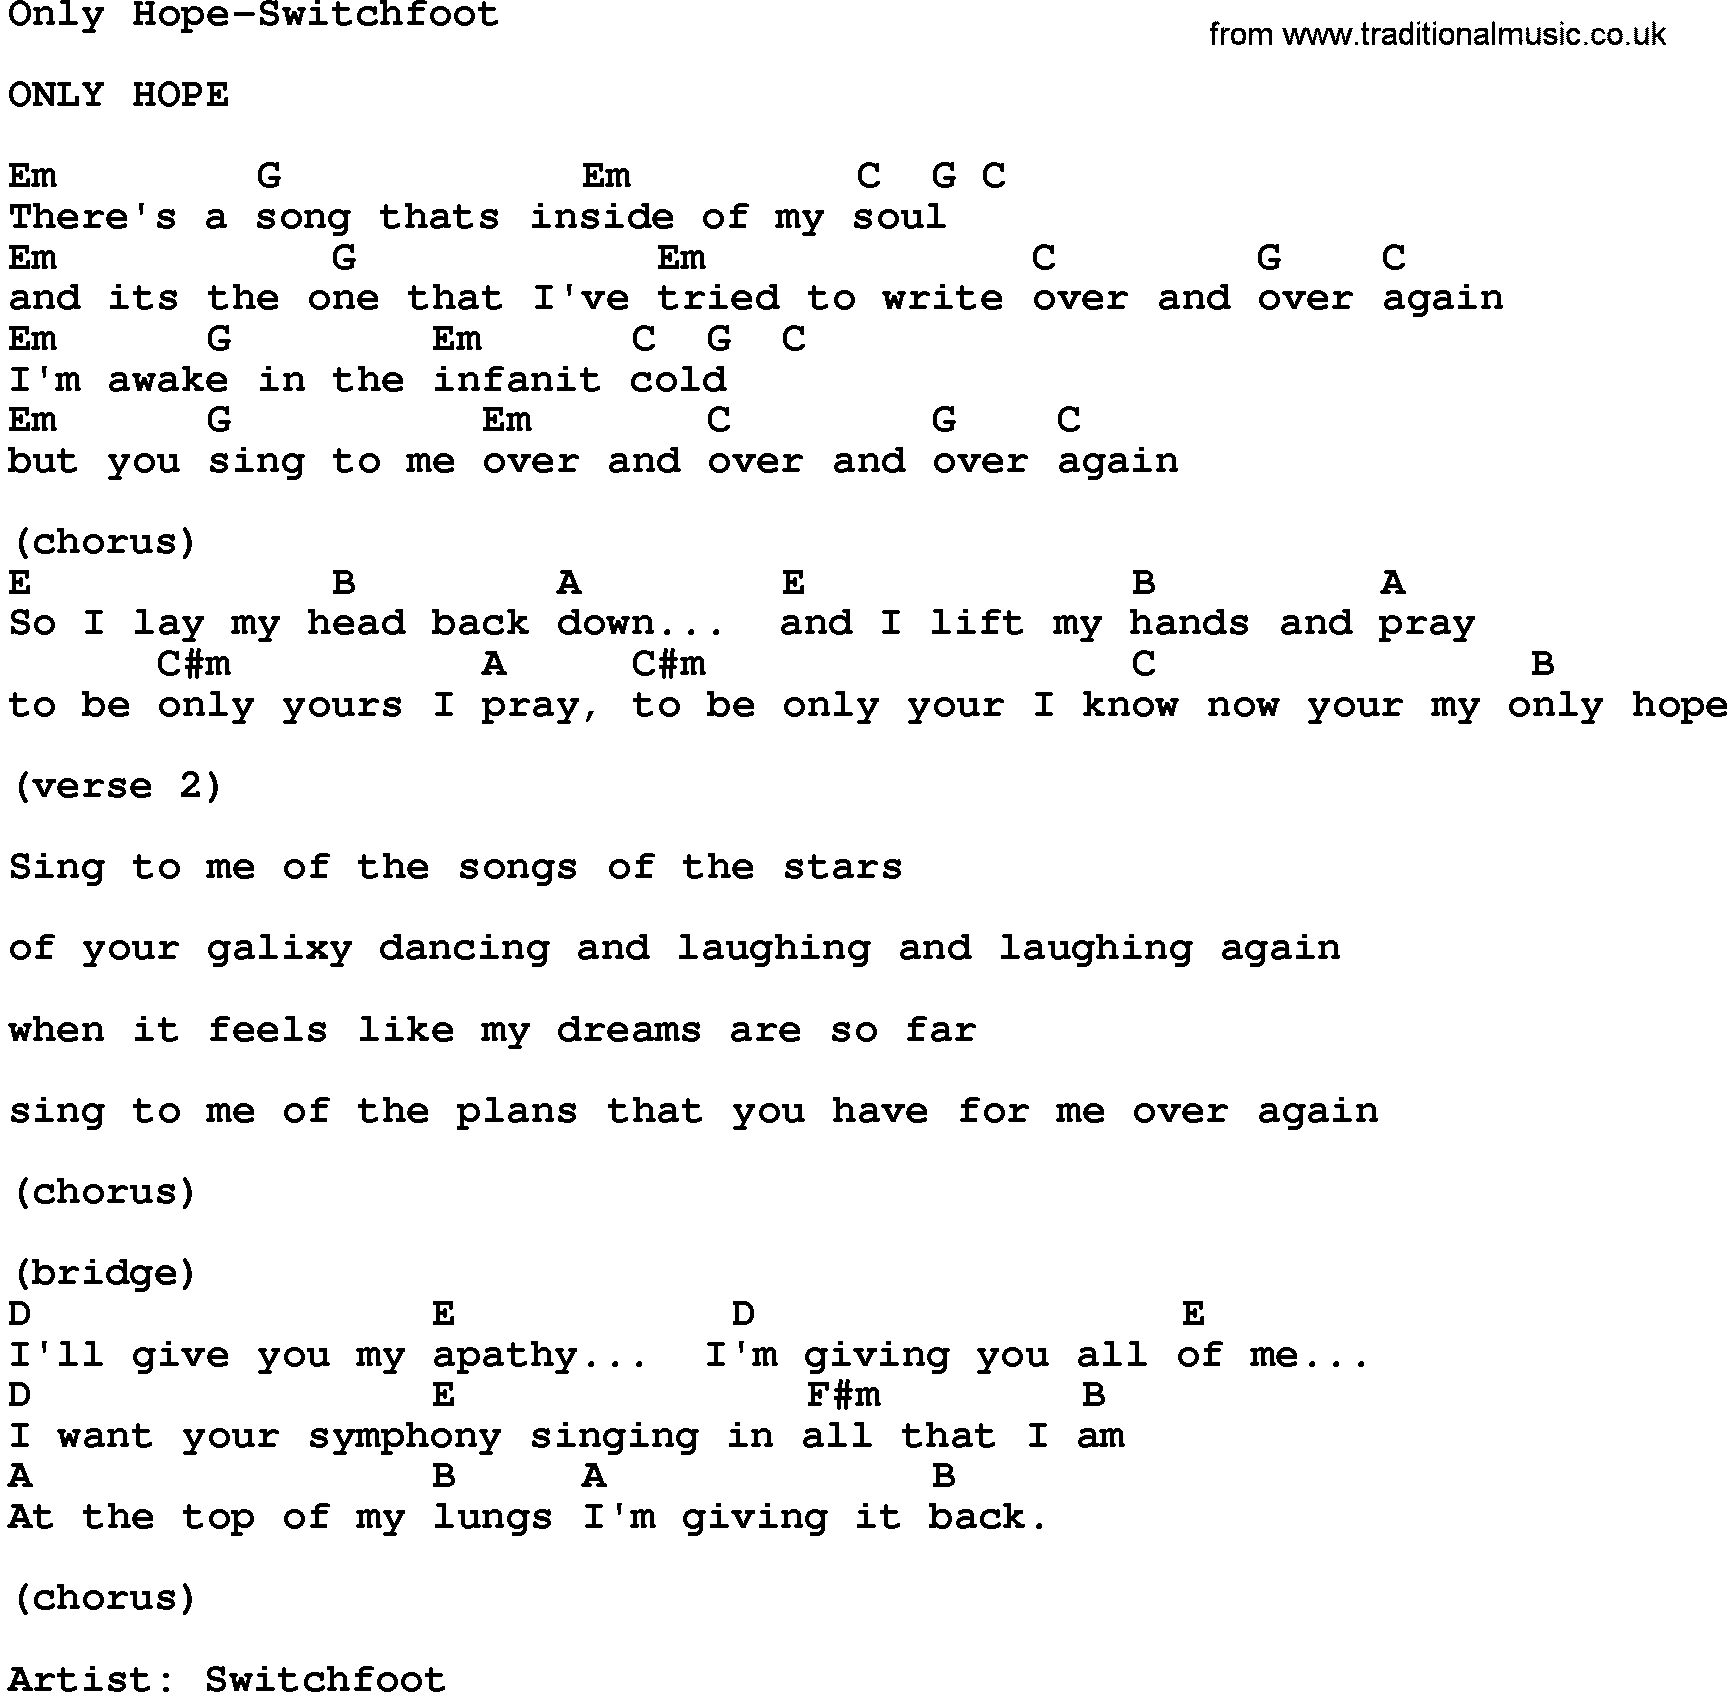 Gospel song only hope switchfoot lyrics and chords ukulele gospel song only hope switchfoot lyrics and chords hexwebz Gallery